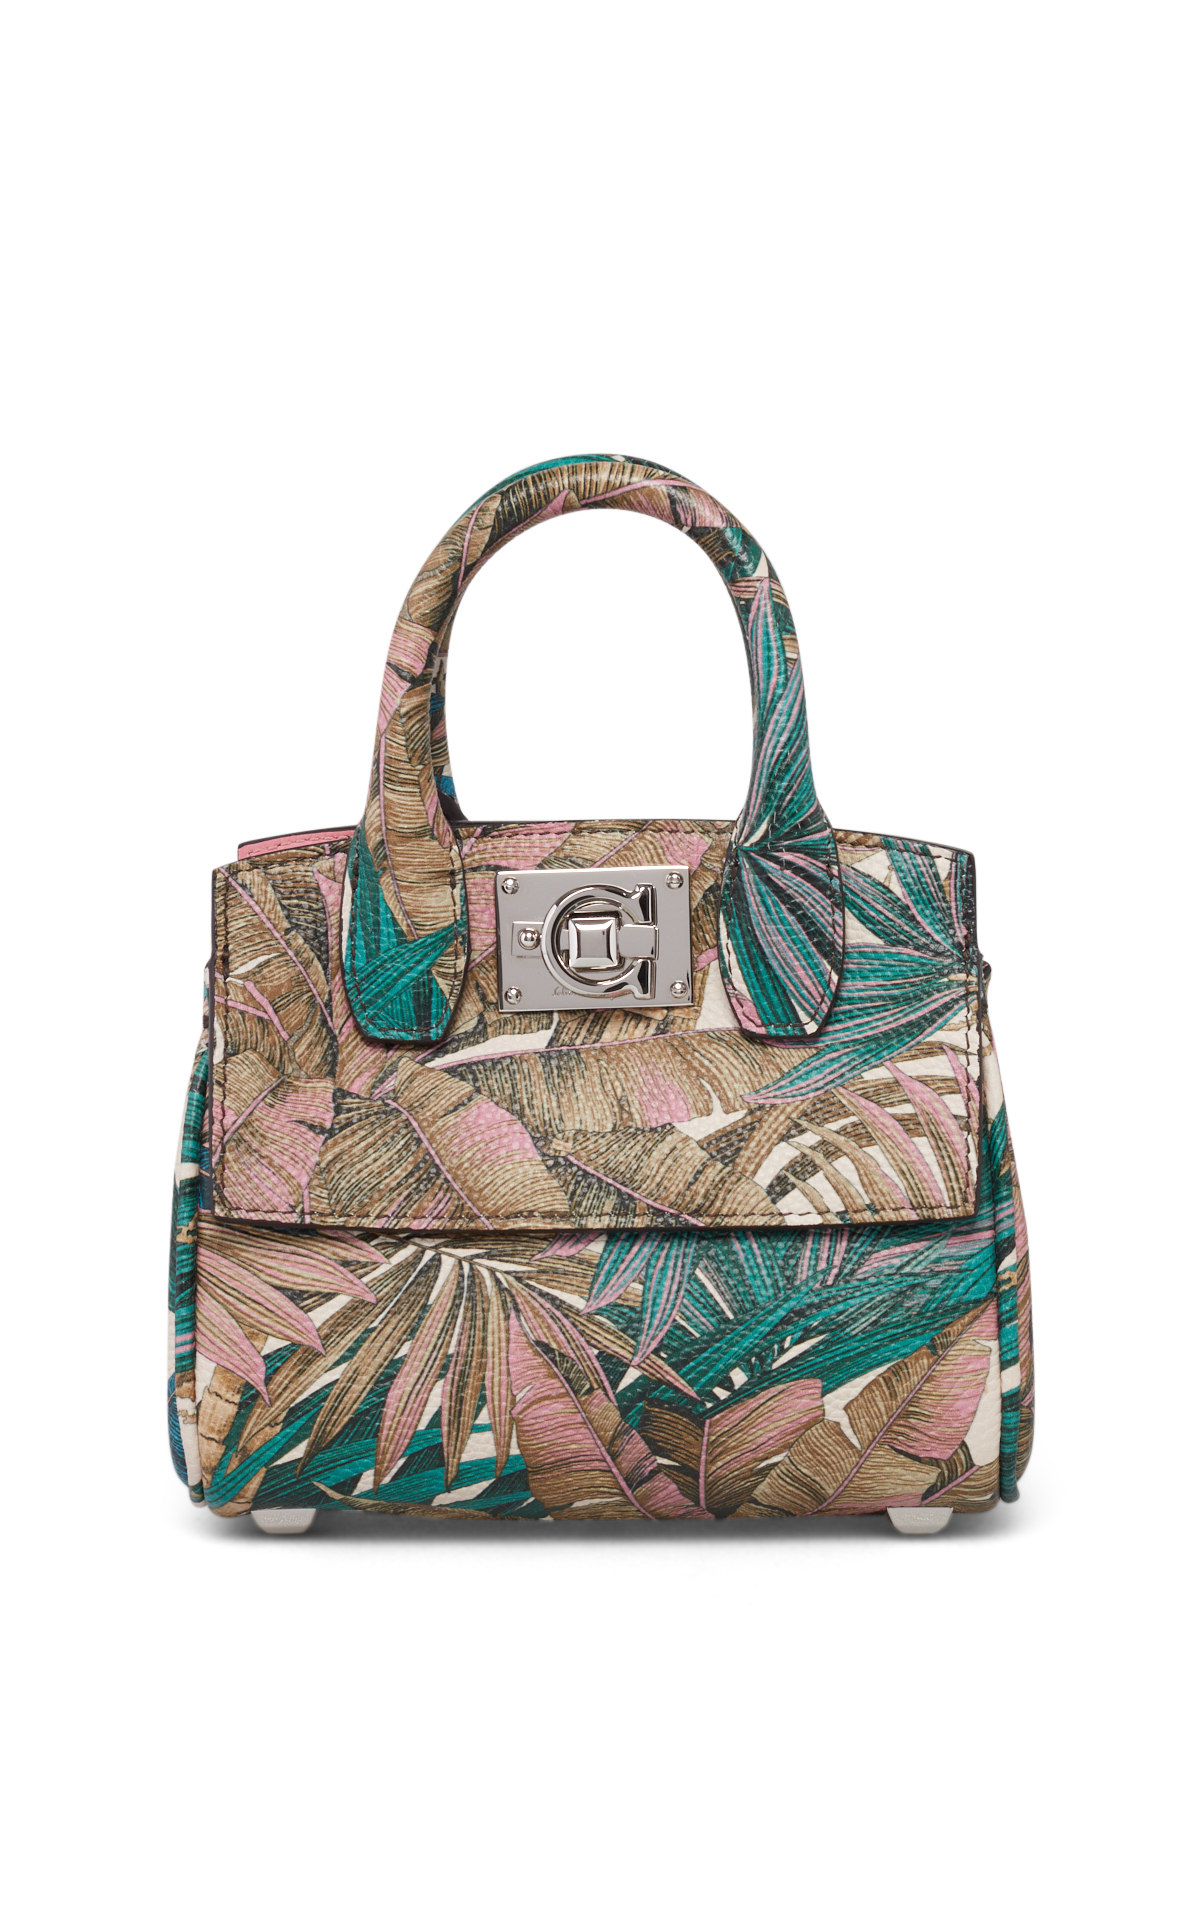 Salvatore Ferragamo Mini sac tropical The Studio*